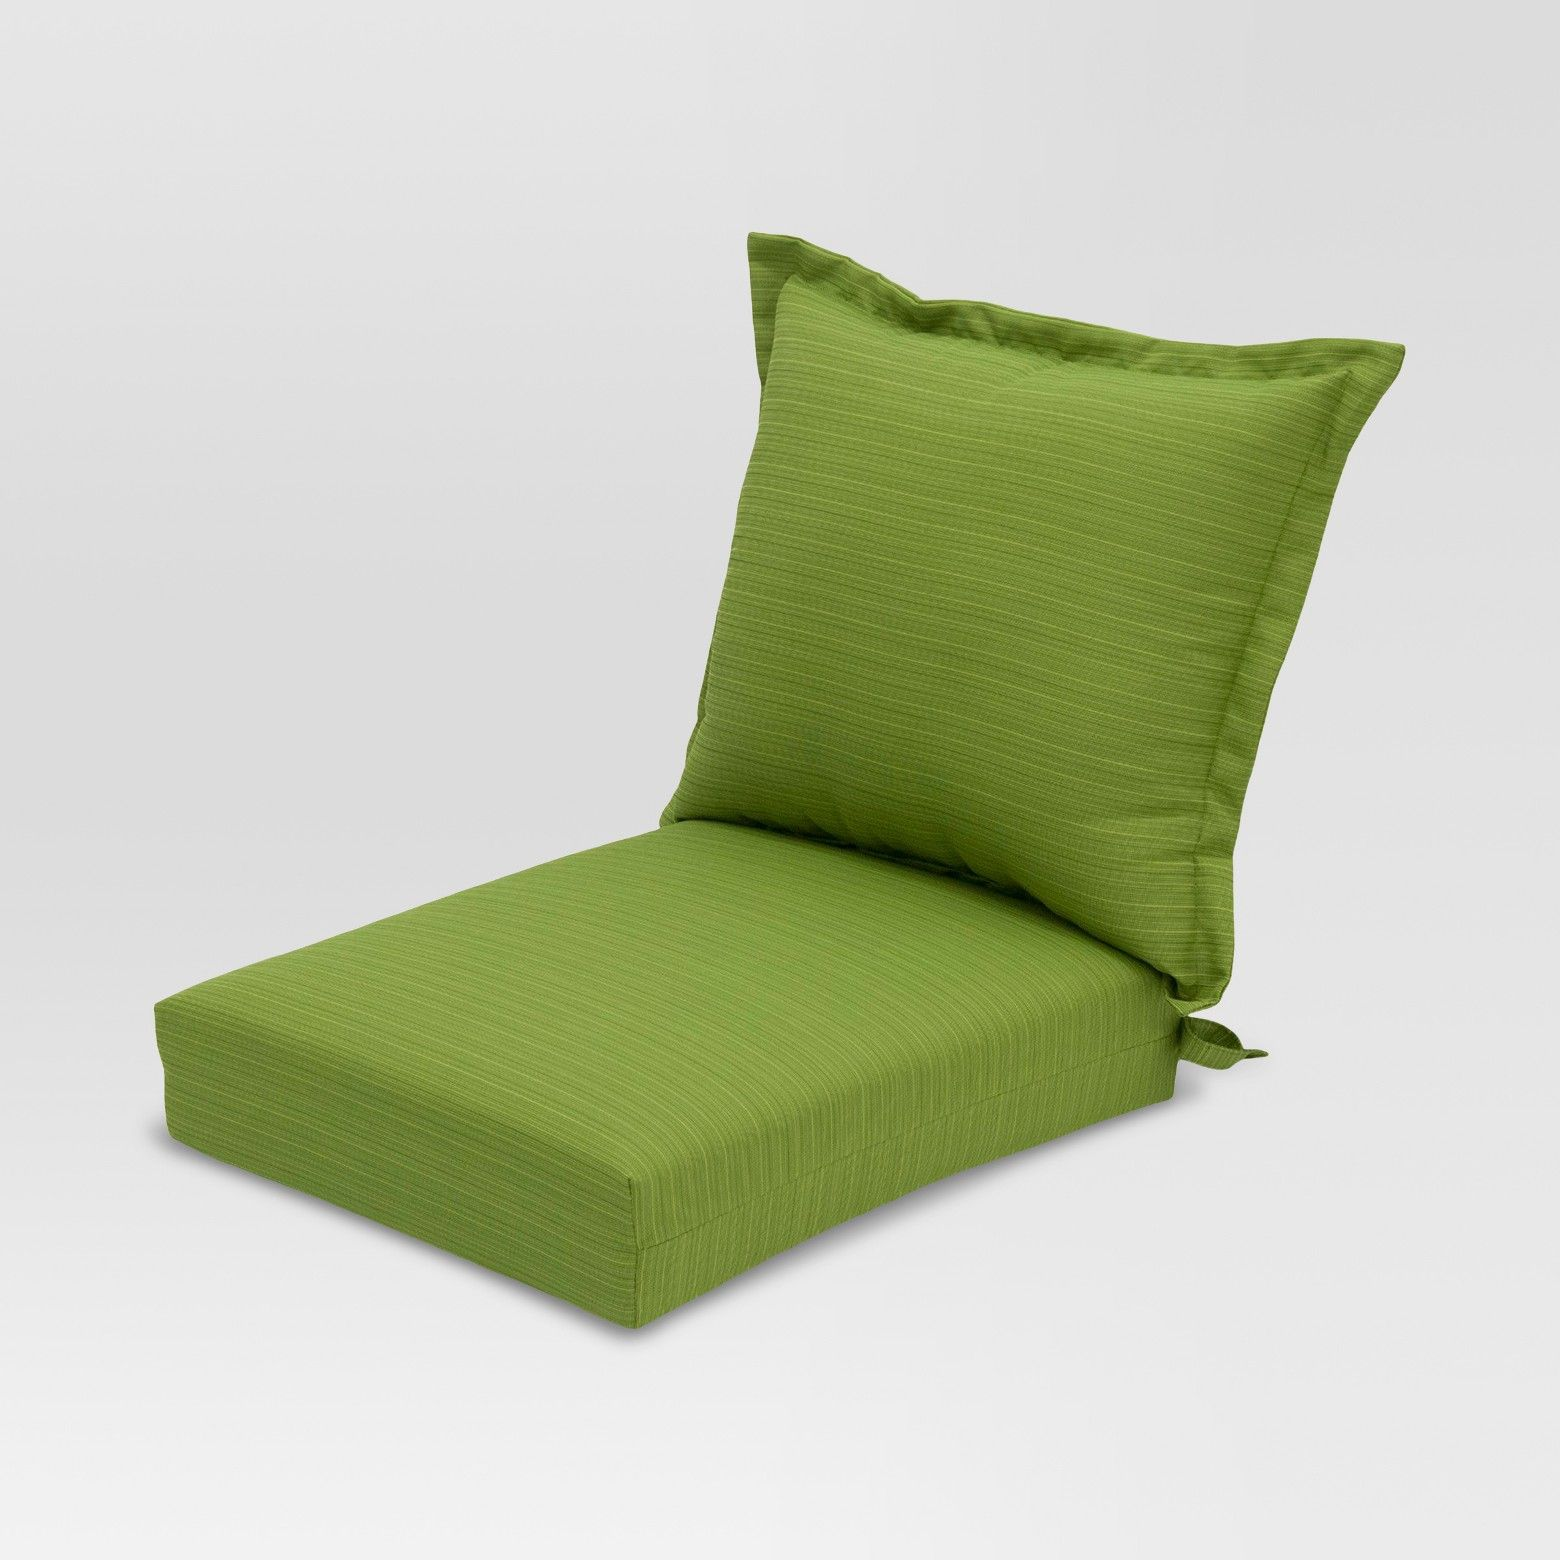 Your patio chair will look good and feel great with this